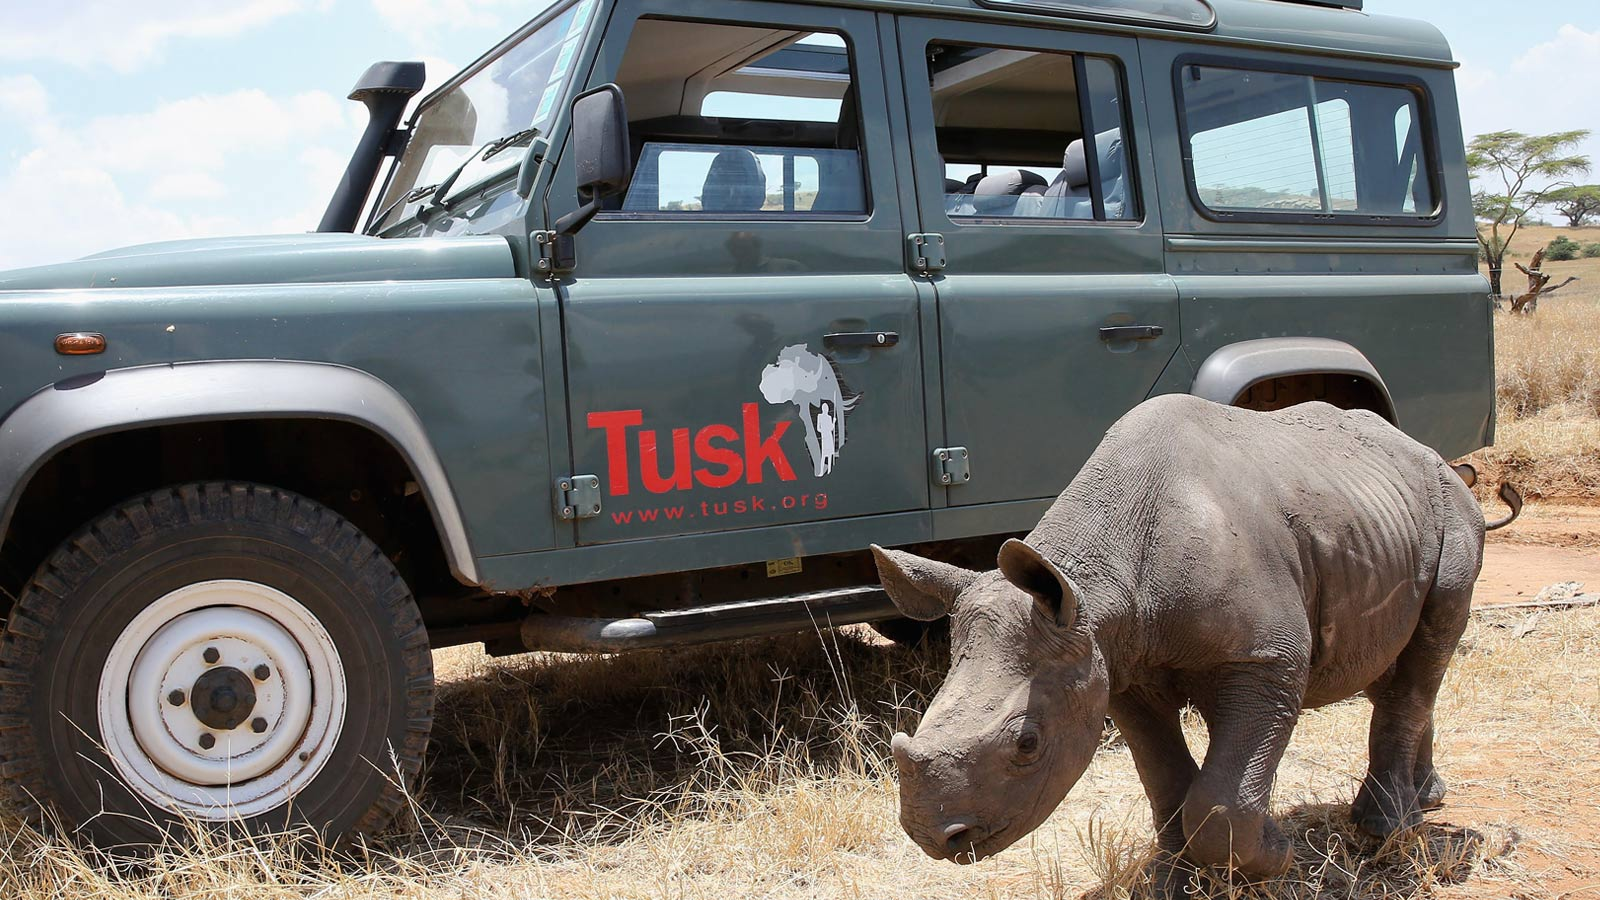 Land Rover and Tusk - The Partnership